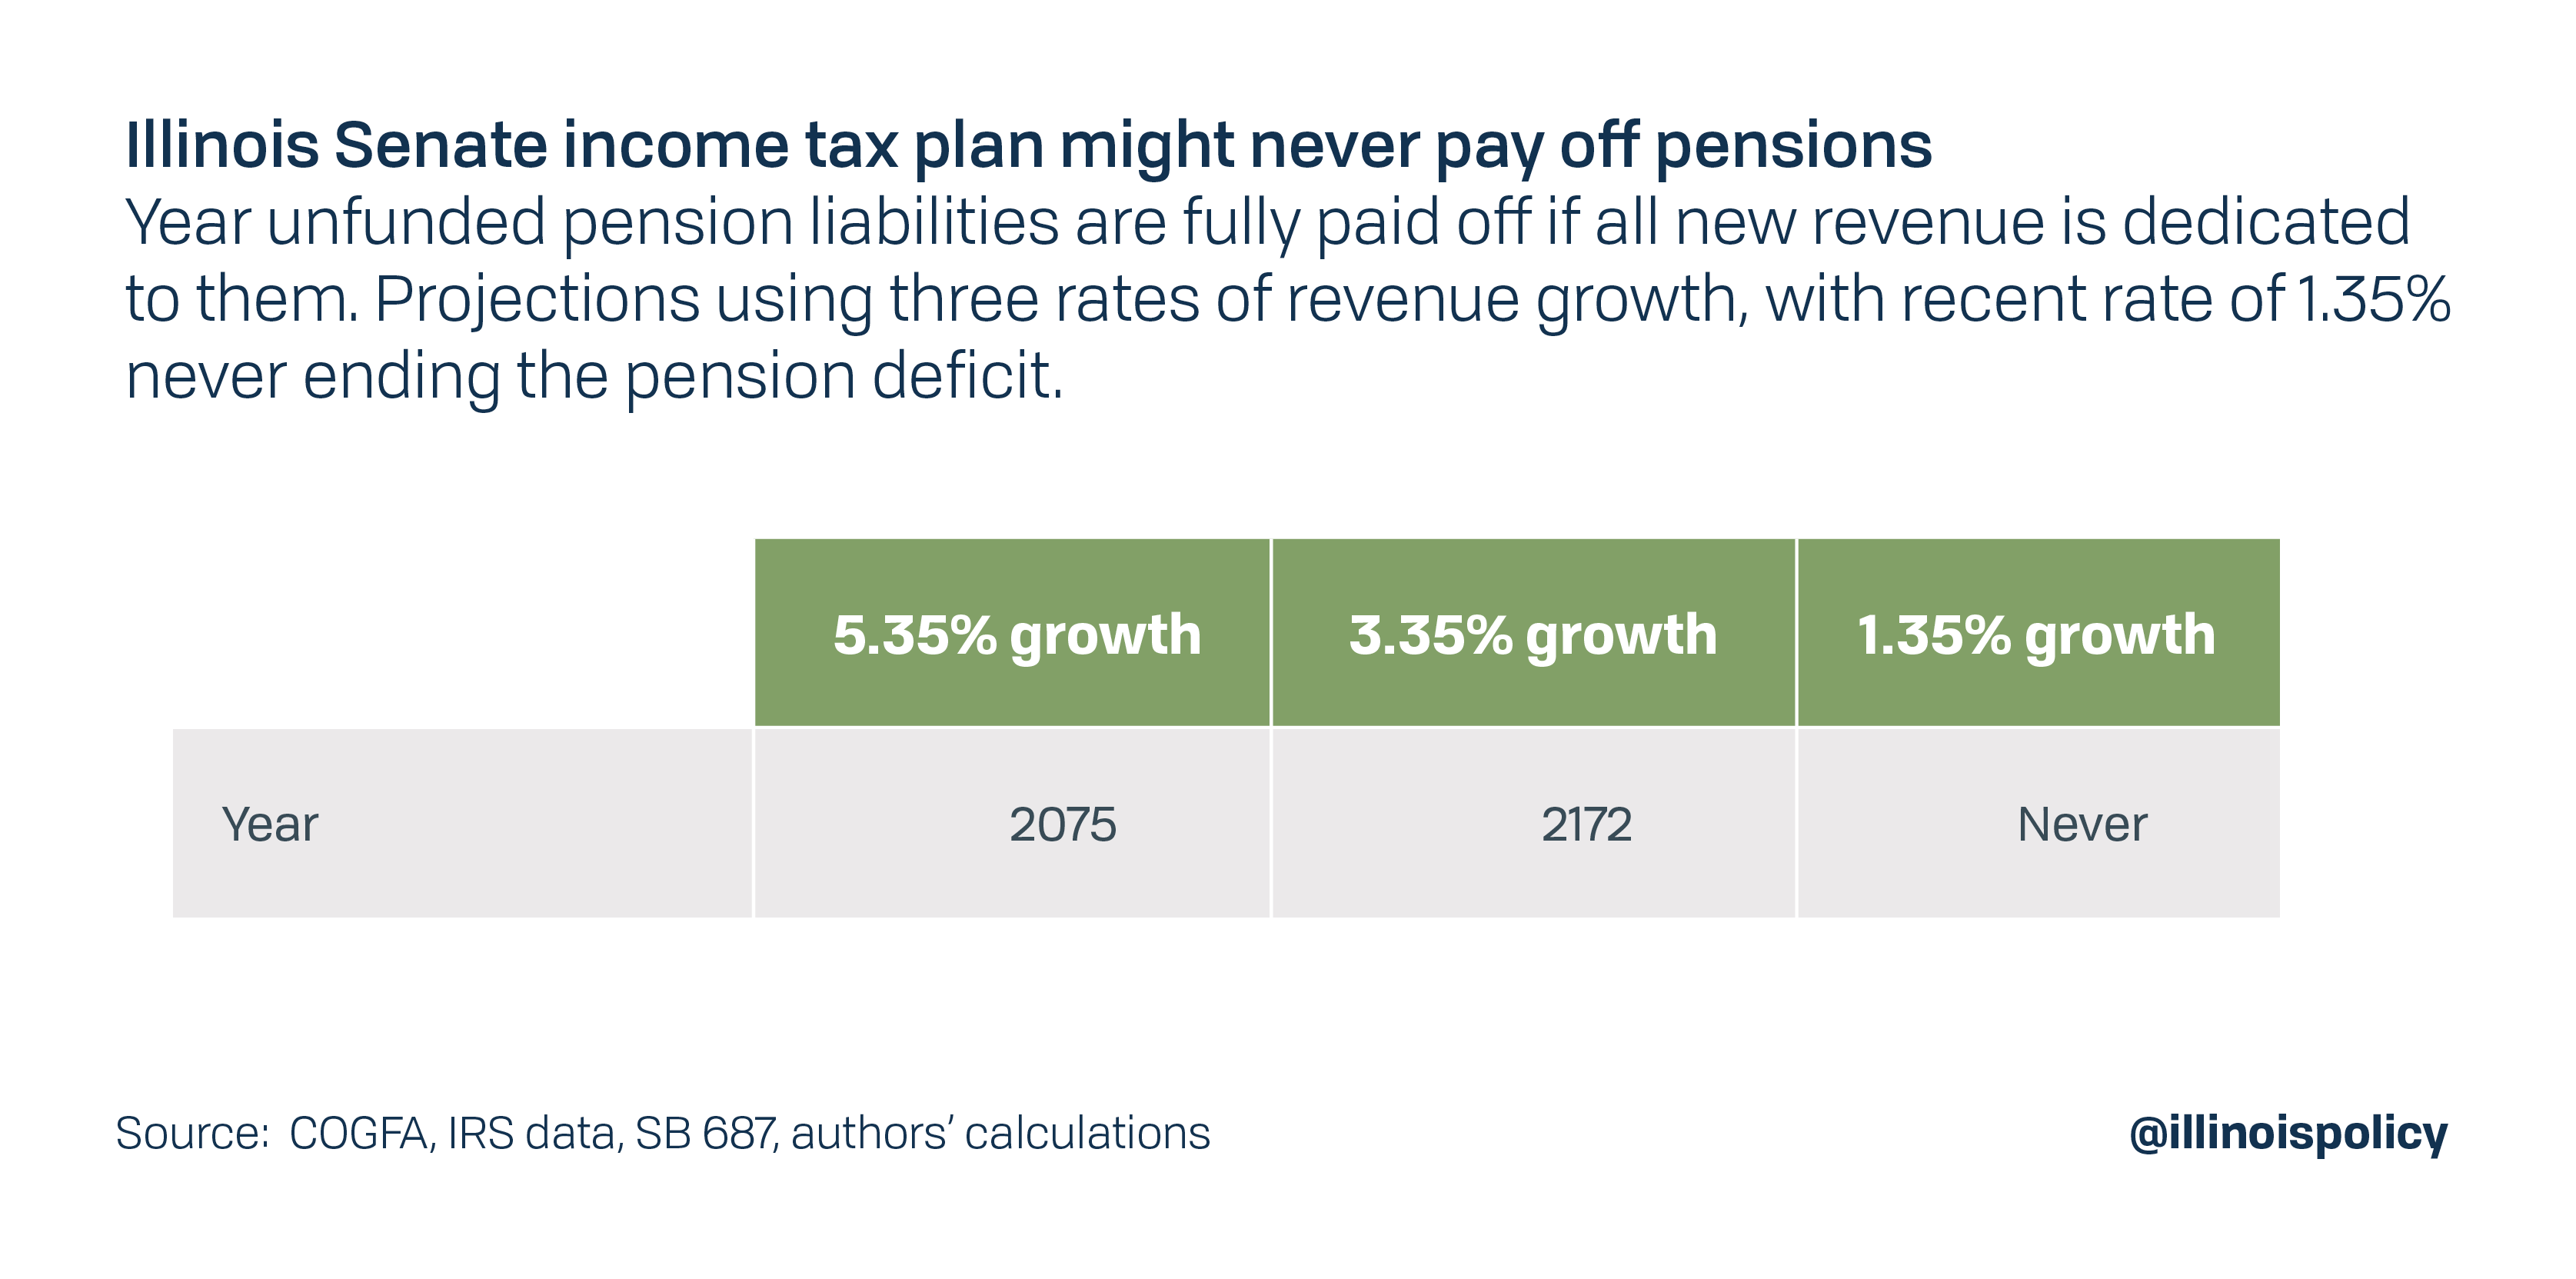 Illinois senate income tax plan might never pay off pensions